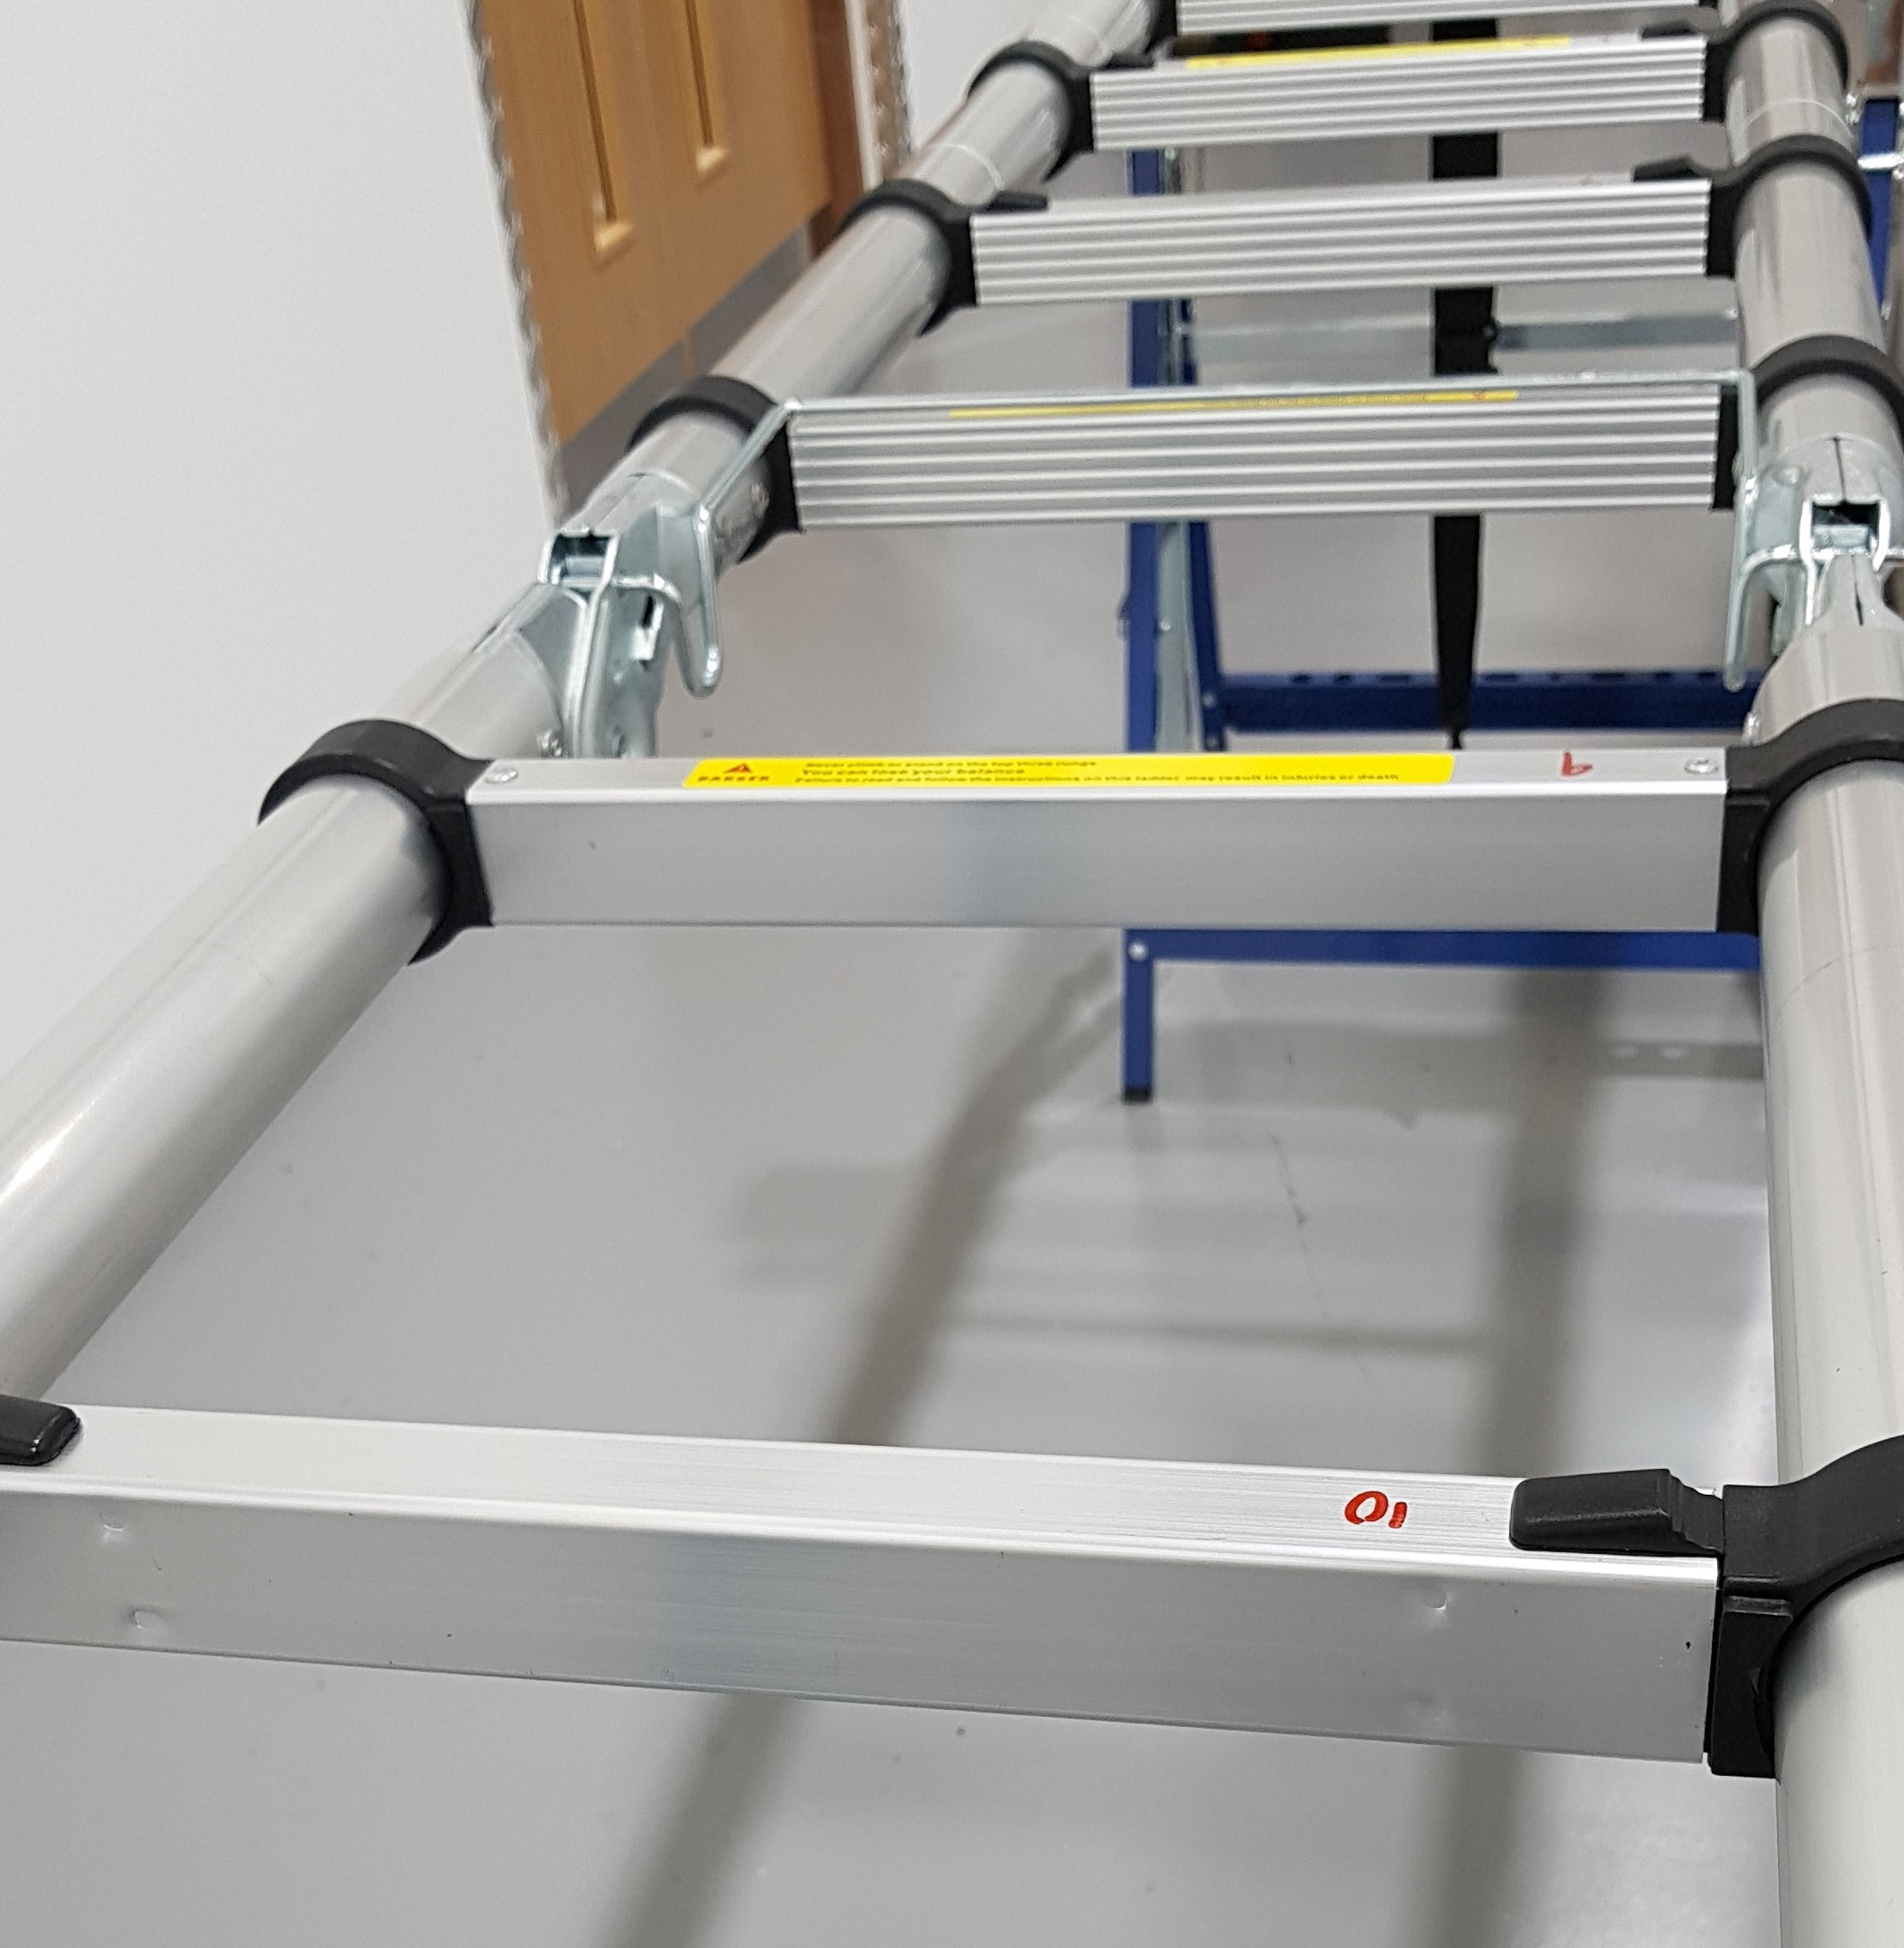 Ladder rungs without slip-resistant surface